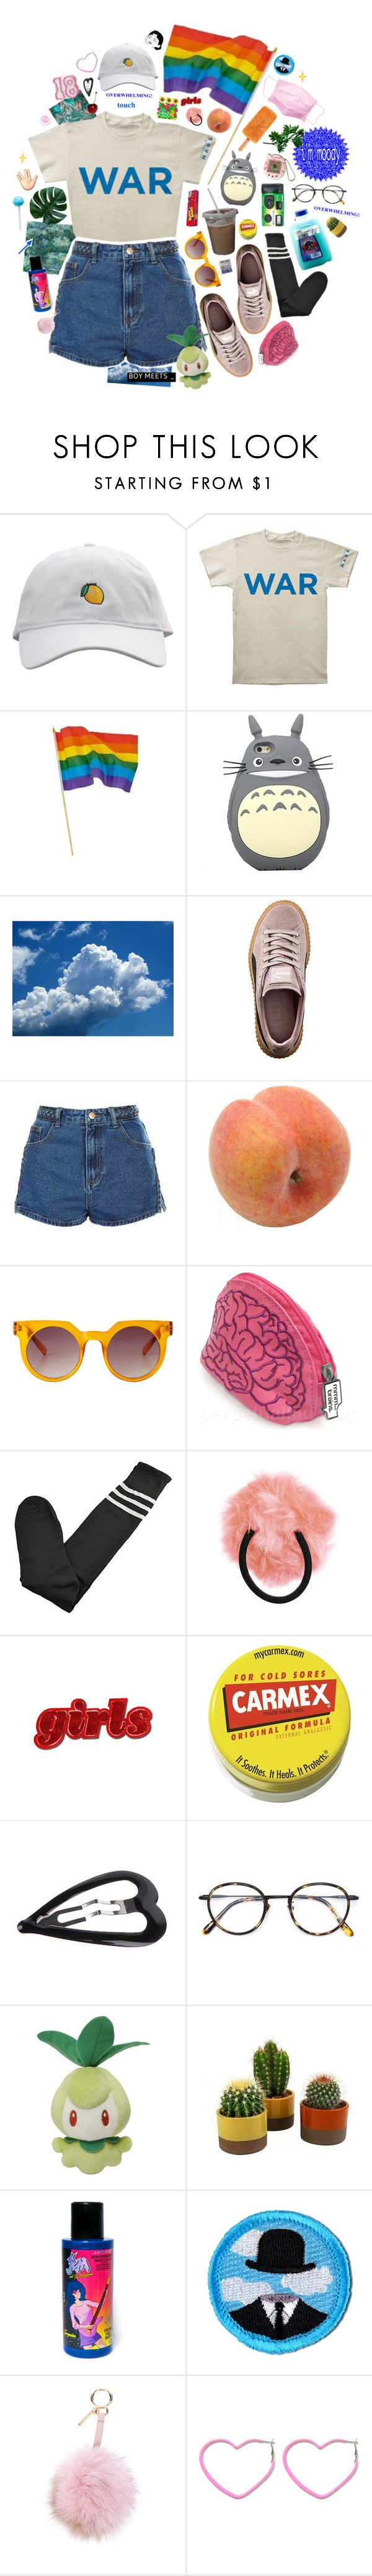 """""""190"""" by shelbyo3o ❤ liked on Polyvore featuring Puma, Topshop, Pavilion Broadway, Monki, Carmex, Forever 21, Frency & Mercury, Nintendo, PLANT and Manic Panic NYC"""